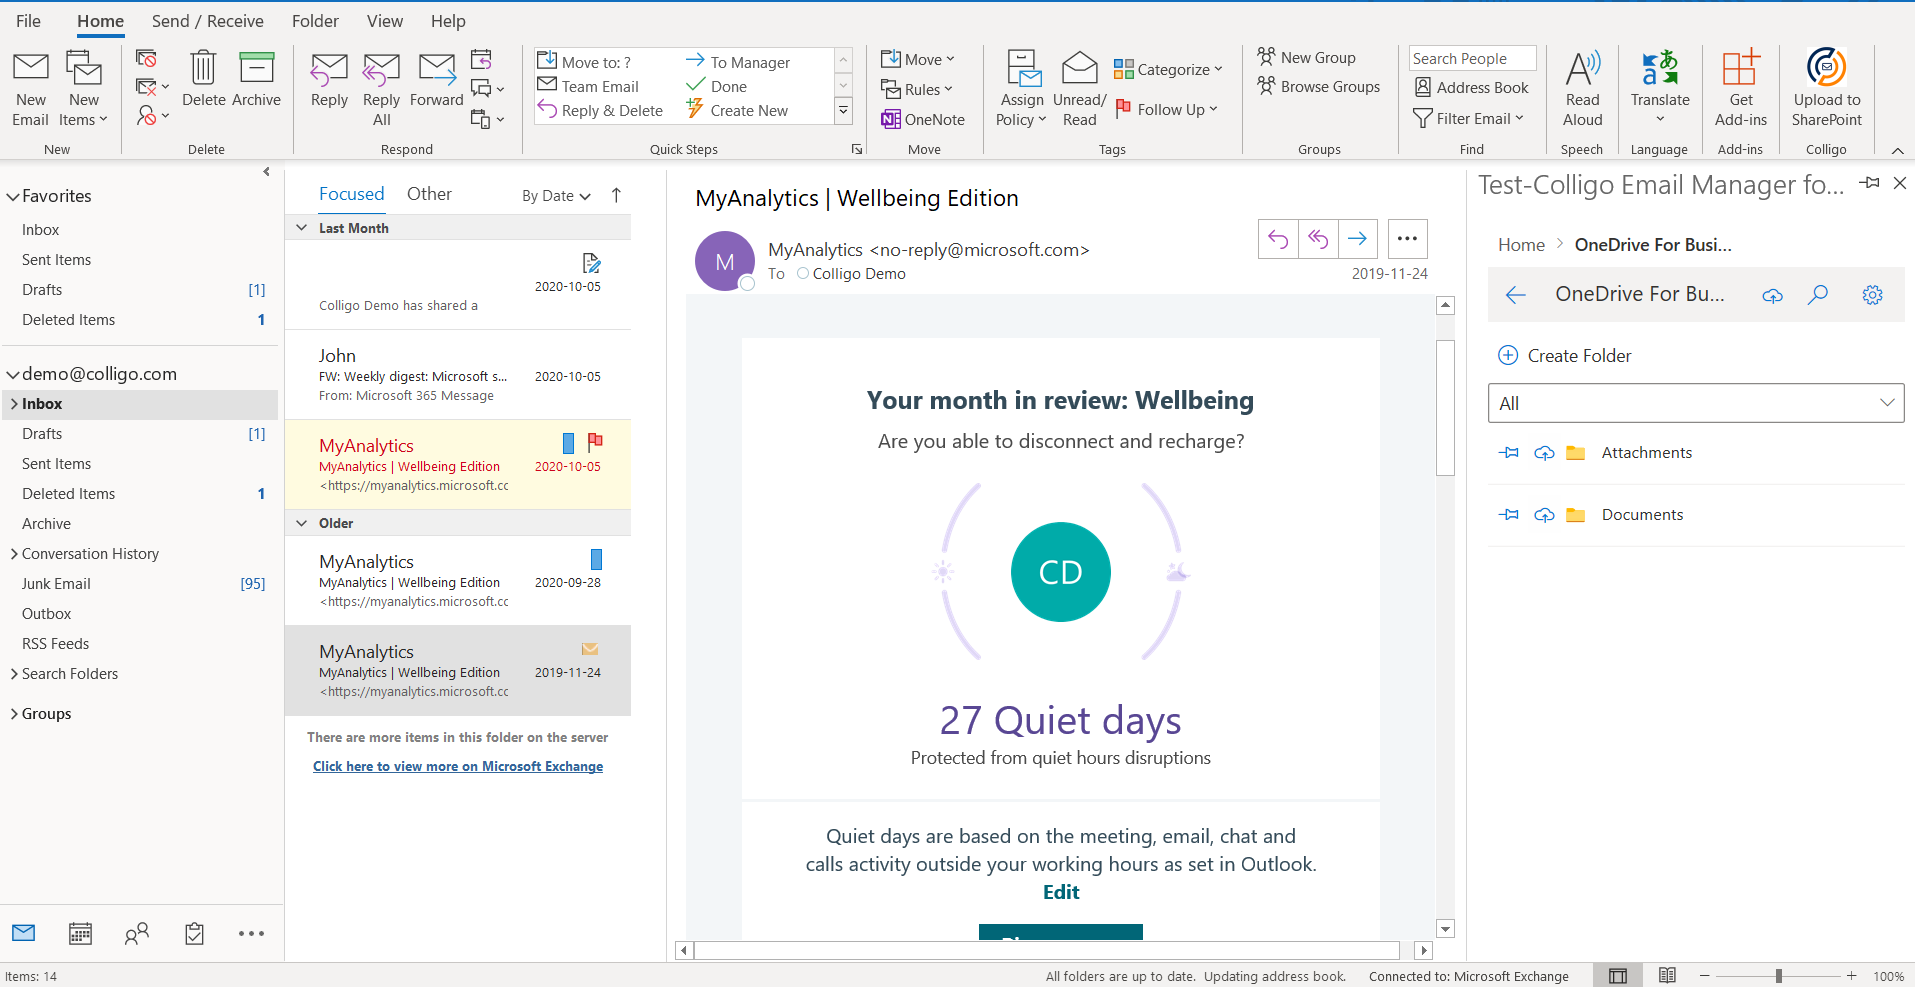 Colligo email manager now integrates with OneDrive